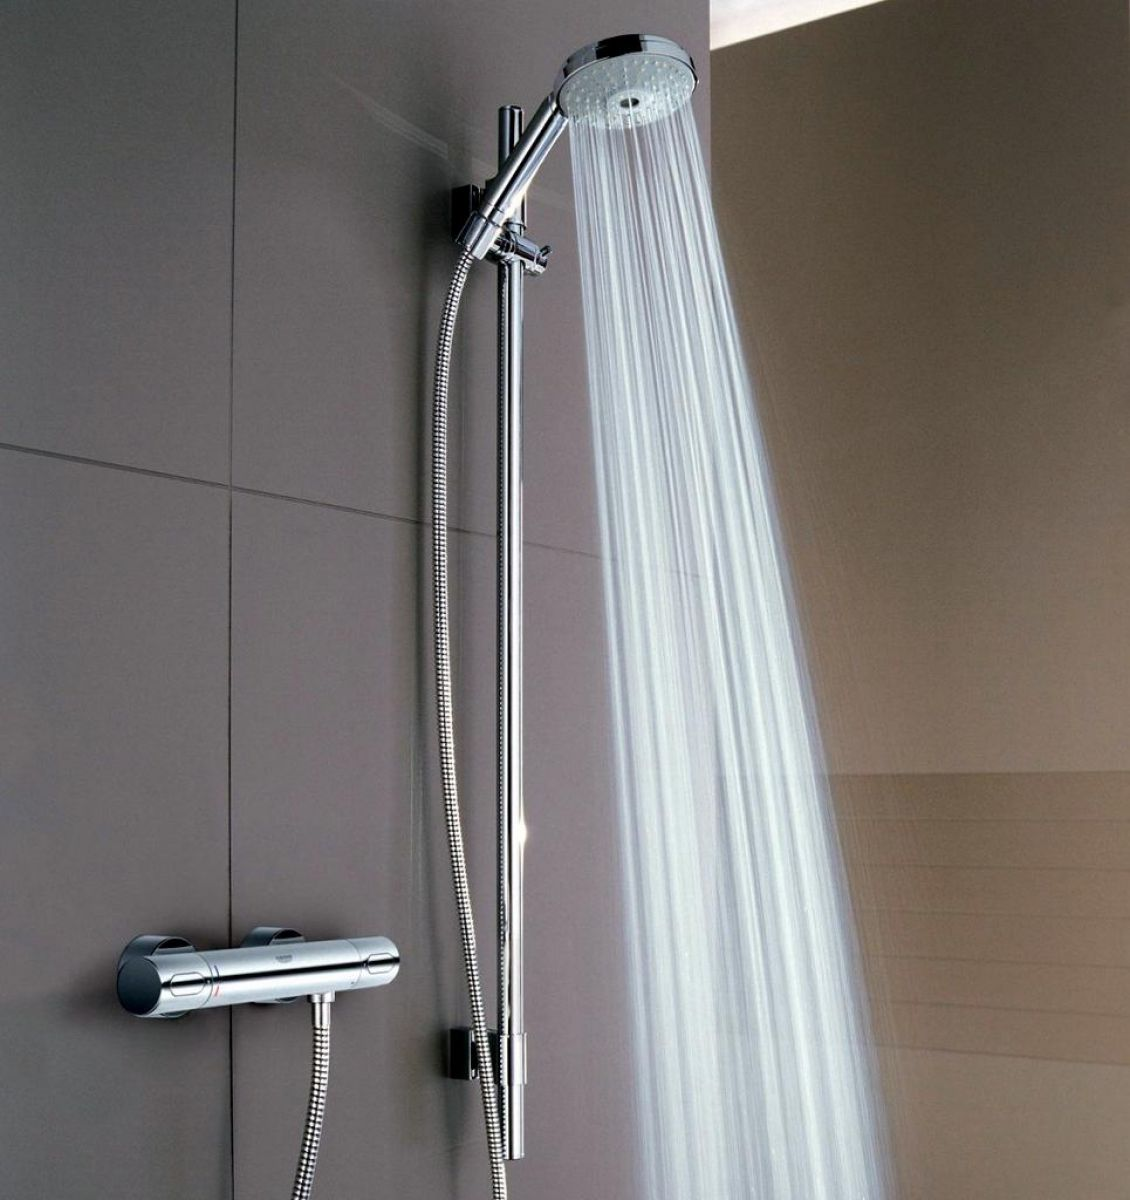 grohe grohtherm 3000 thermostatic shower mixer with rainshower cosmopolitan shower set uk. Black Bedroom Furniture Sets. Home Design Ideas